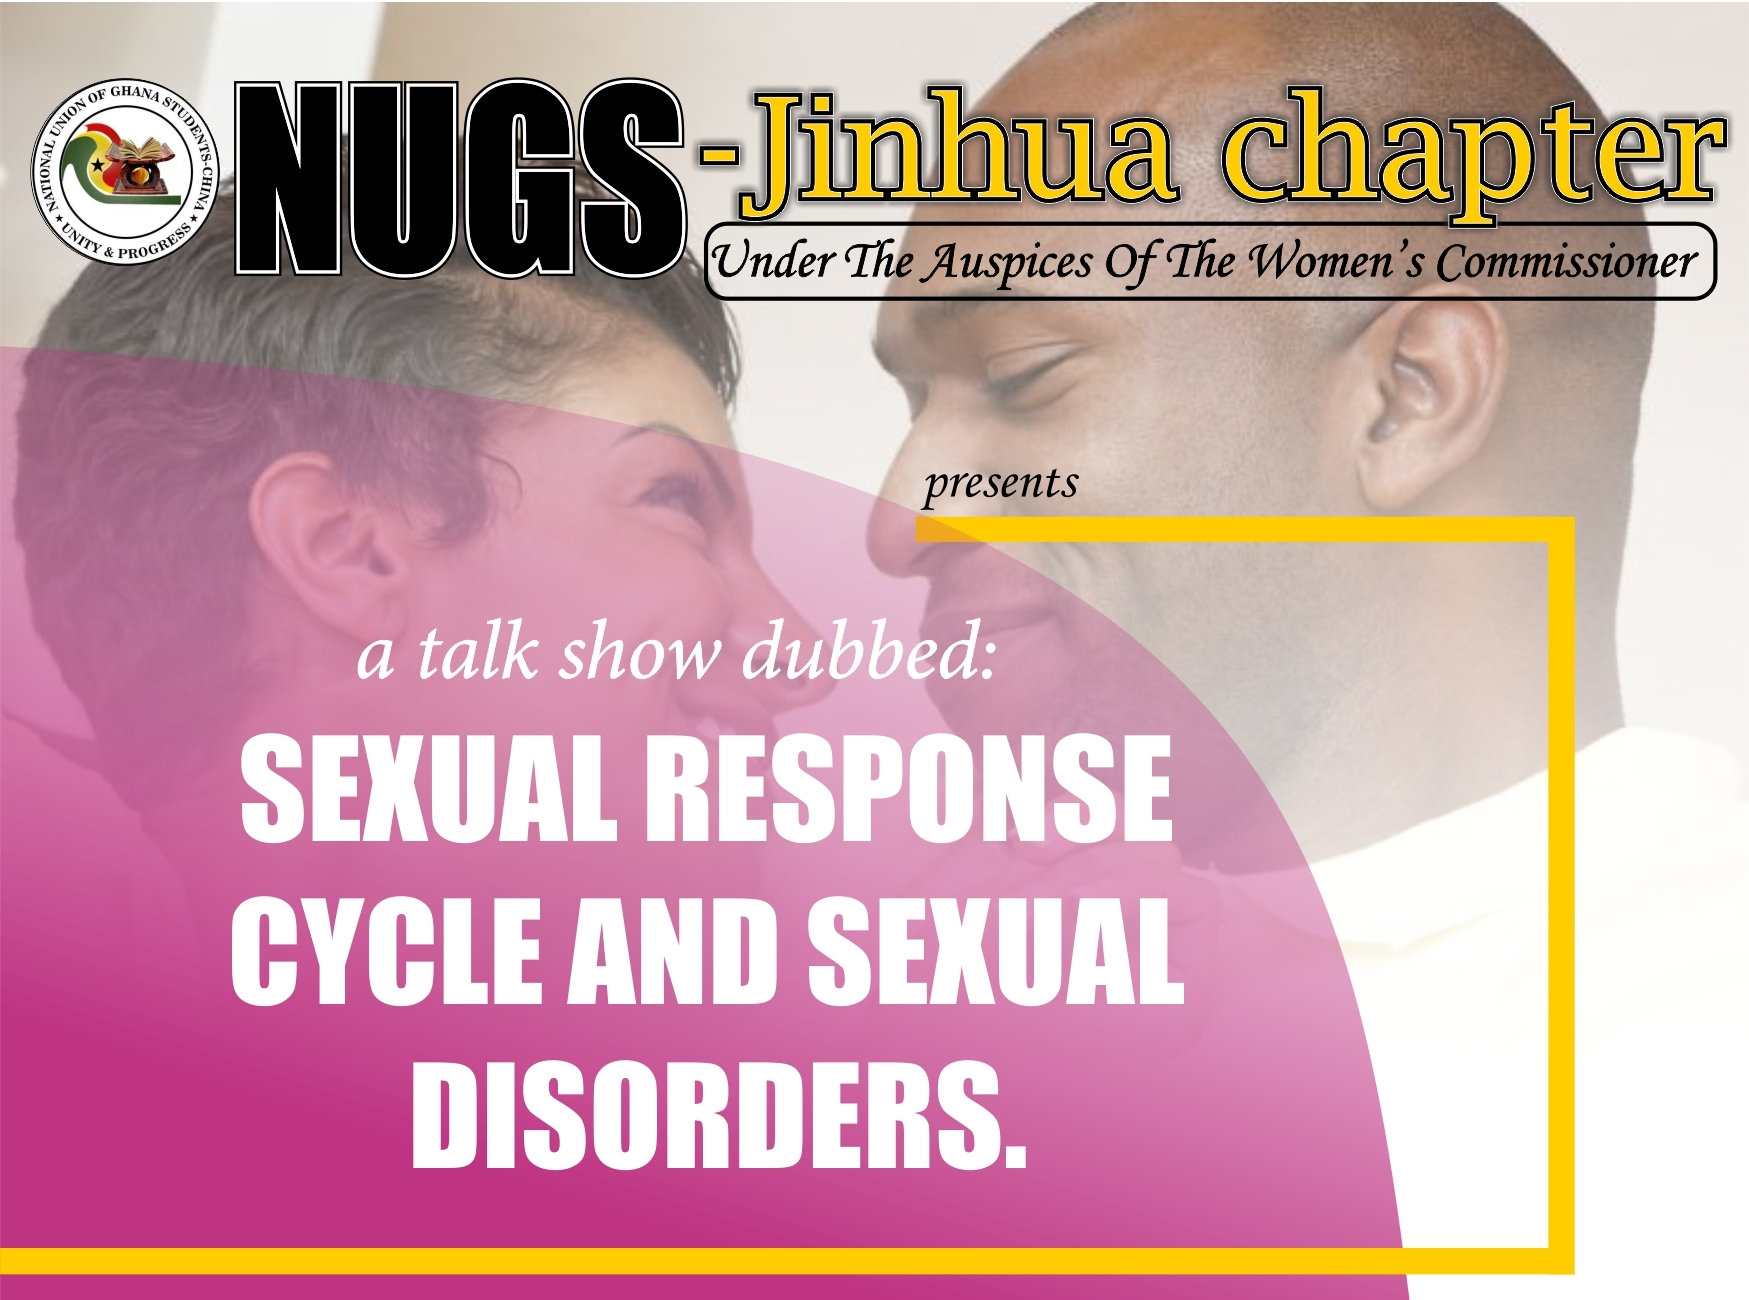 NUGS-Jinhua: Sexual Response Cycle and Sexual Disorders